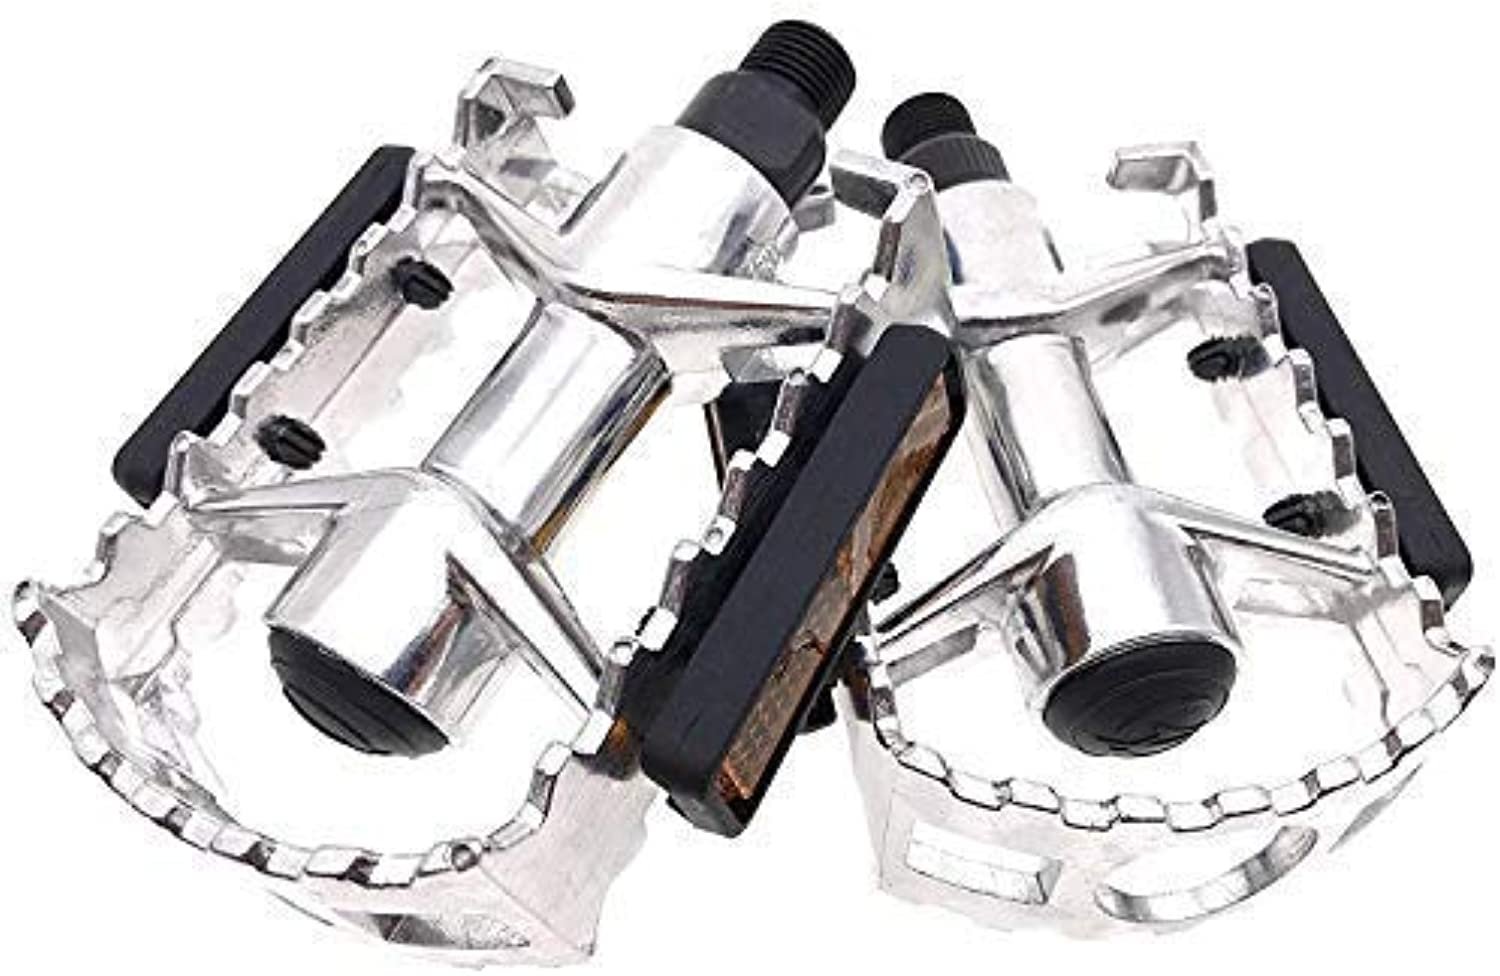 ARTHEALTH Bicycle Pedals Bike Pedals 9 16  Inch Folding Bicycle Pedals Mountain Bikes Road Bicycles Platform Pedals MTB Pedals (Black)